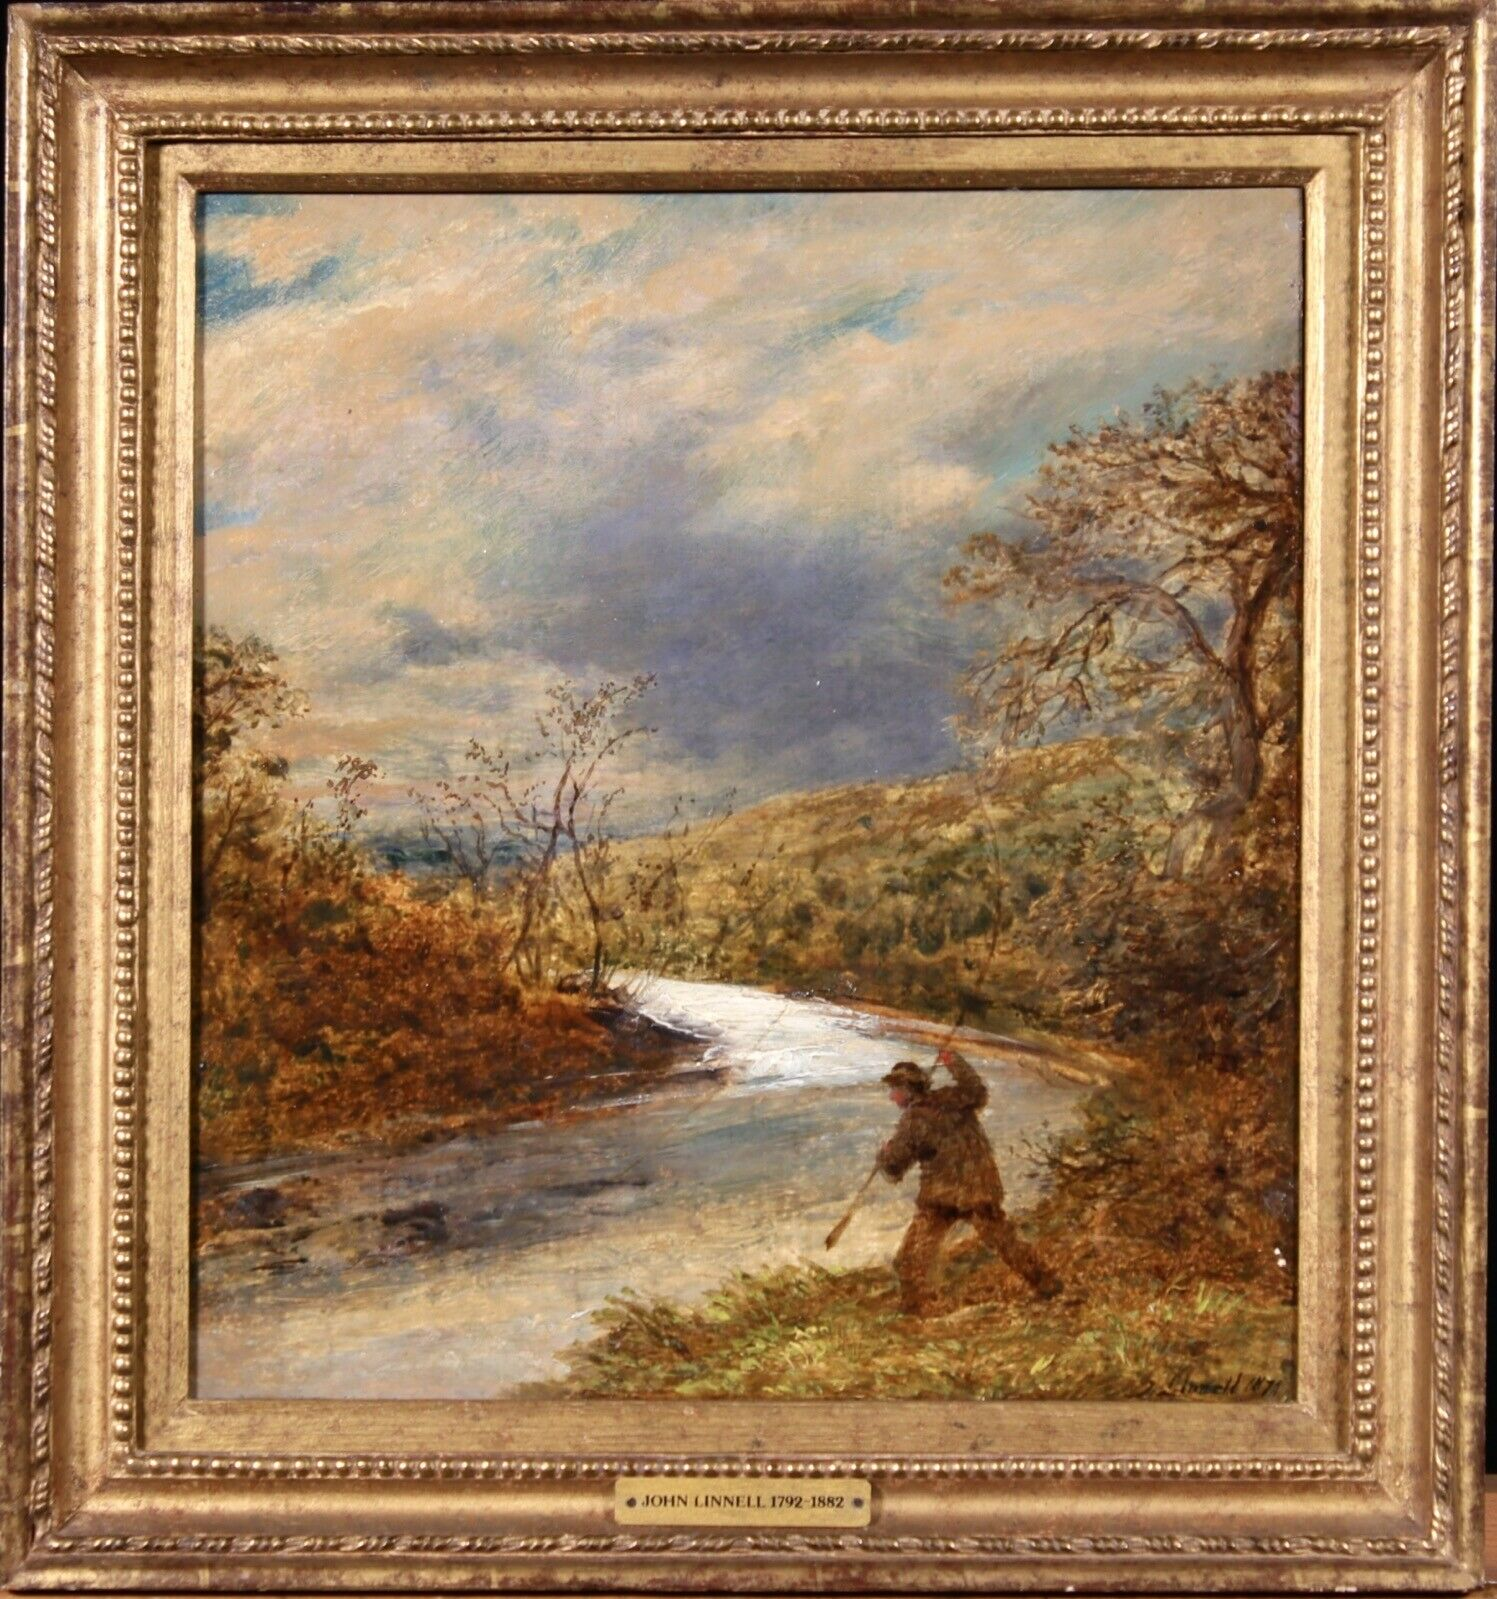 John Linnell (British 1792-1882): The Angler, oil on board signed and dated 1872, 34cm x 31cm - Image 2 of 2